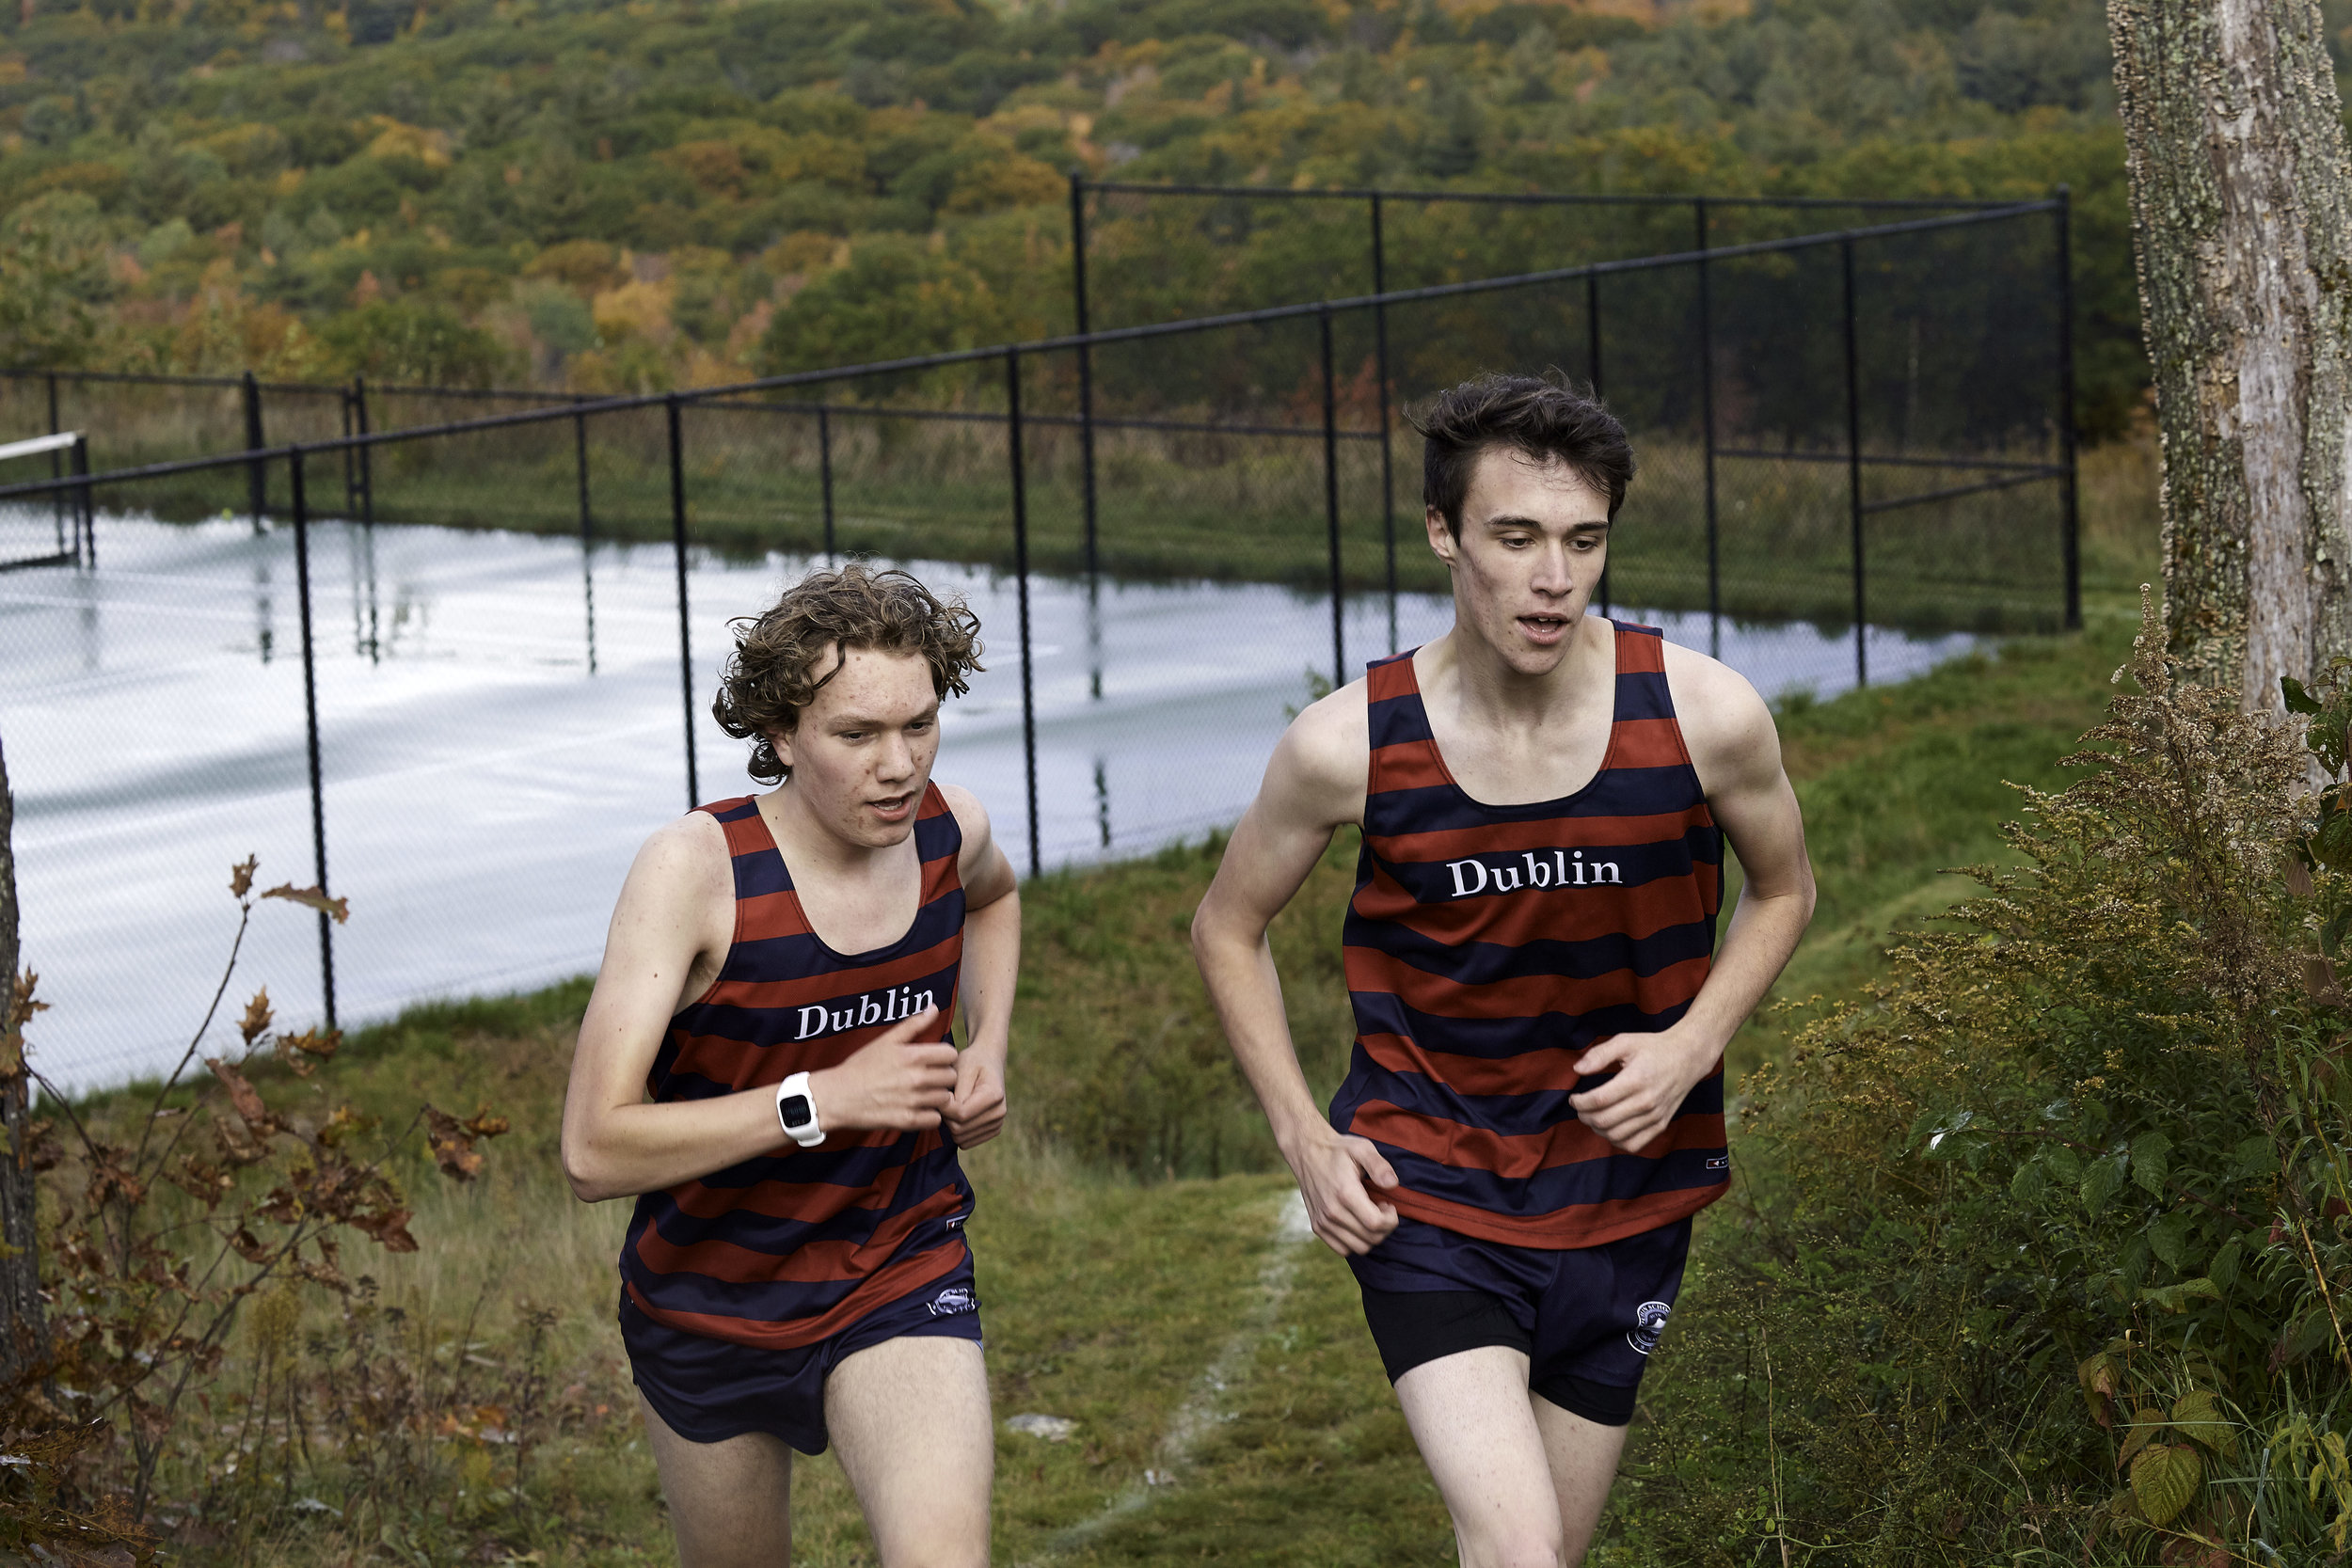 Dublion Invitational - October 12, 2018 - 136606.jpg